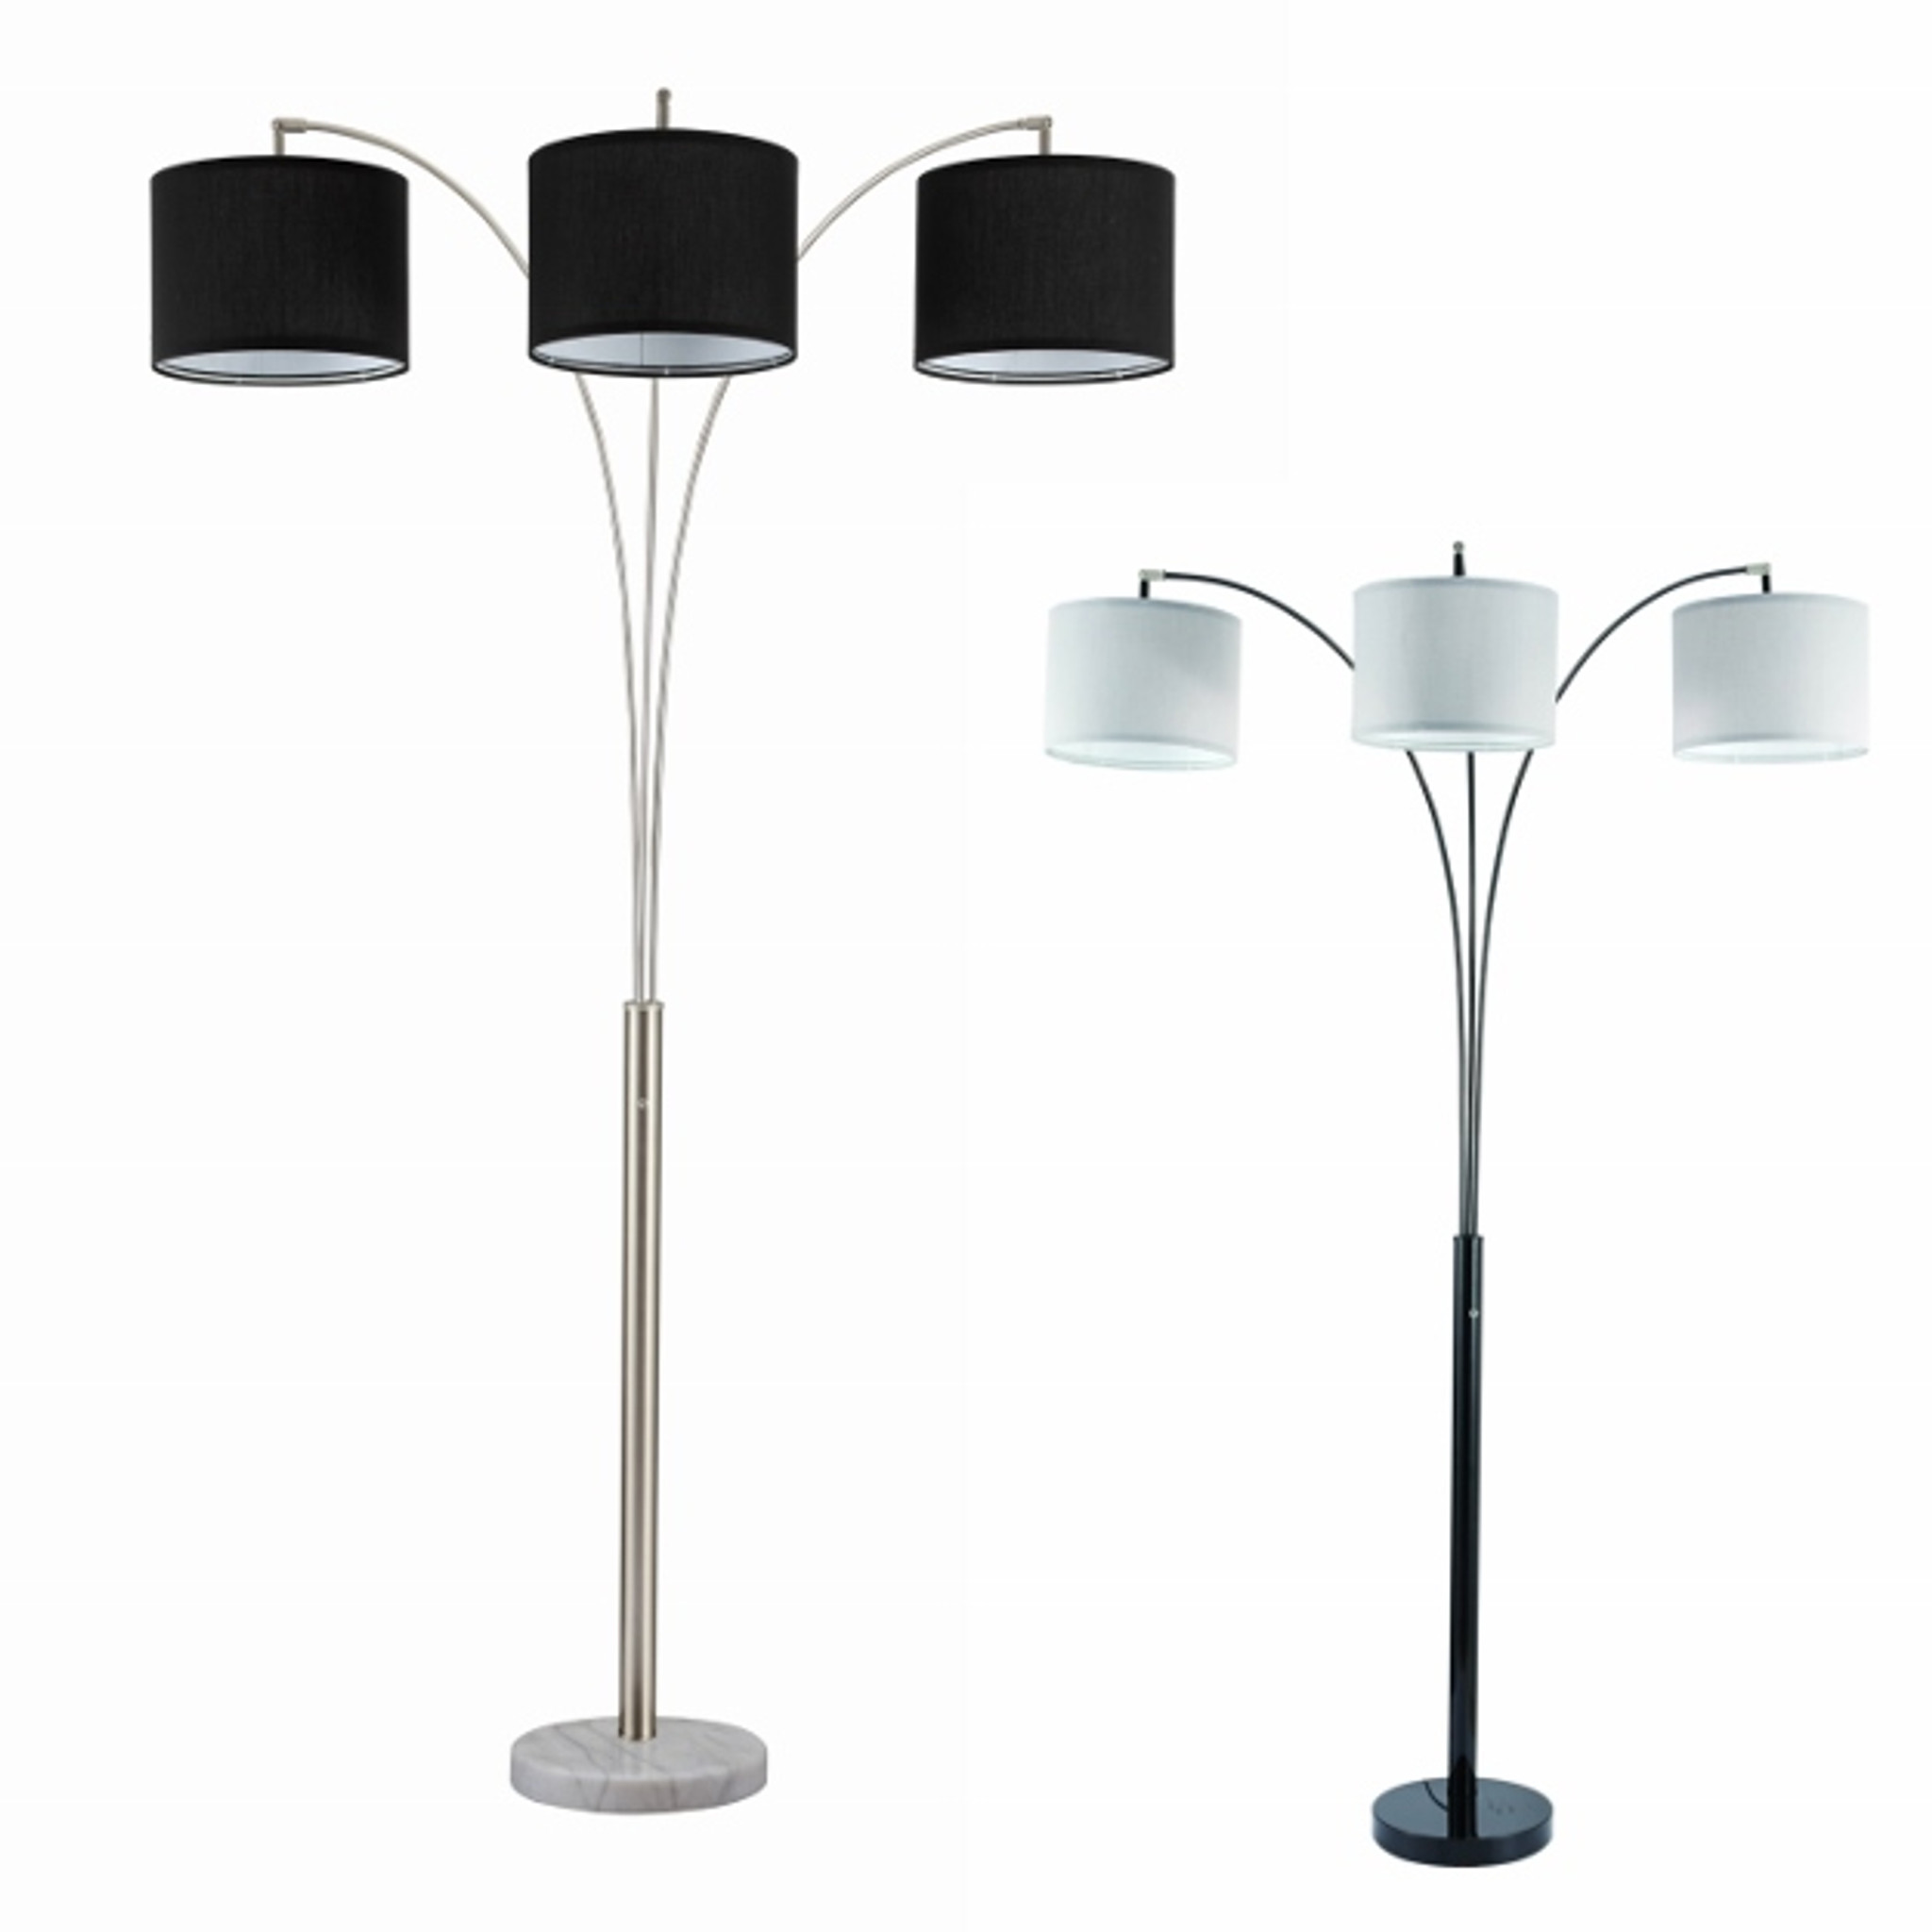 Picture of: 6249f Bk Black Floor Lamp W White Shade Collection By Crown Mark